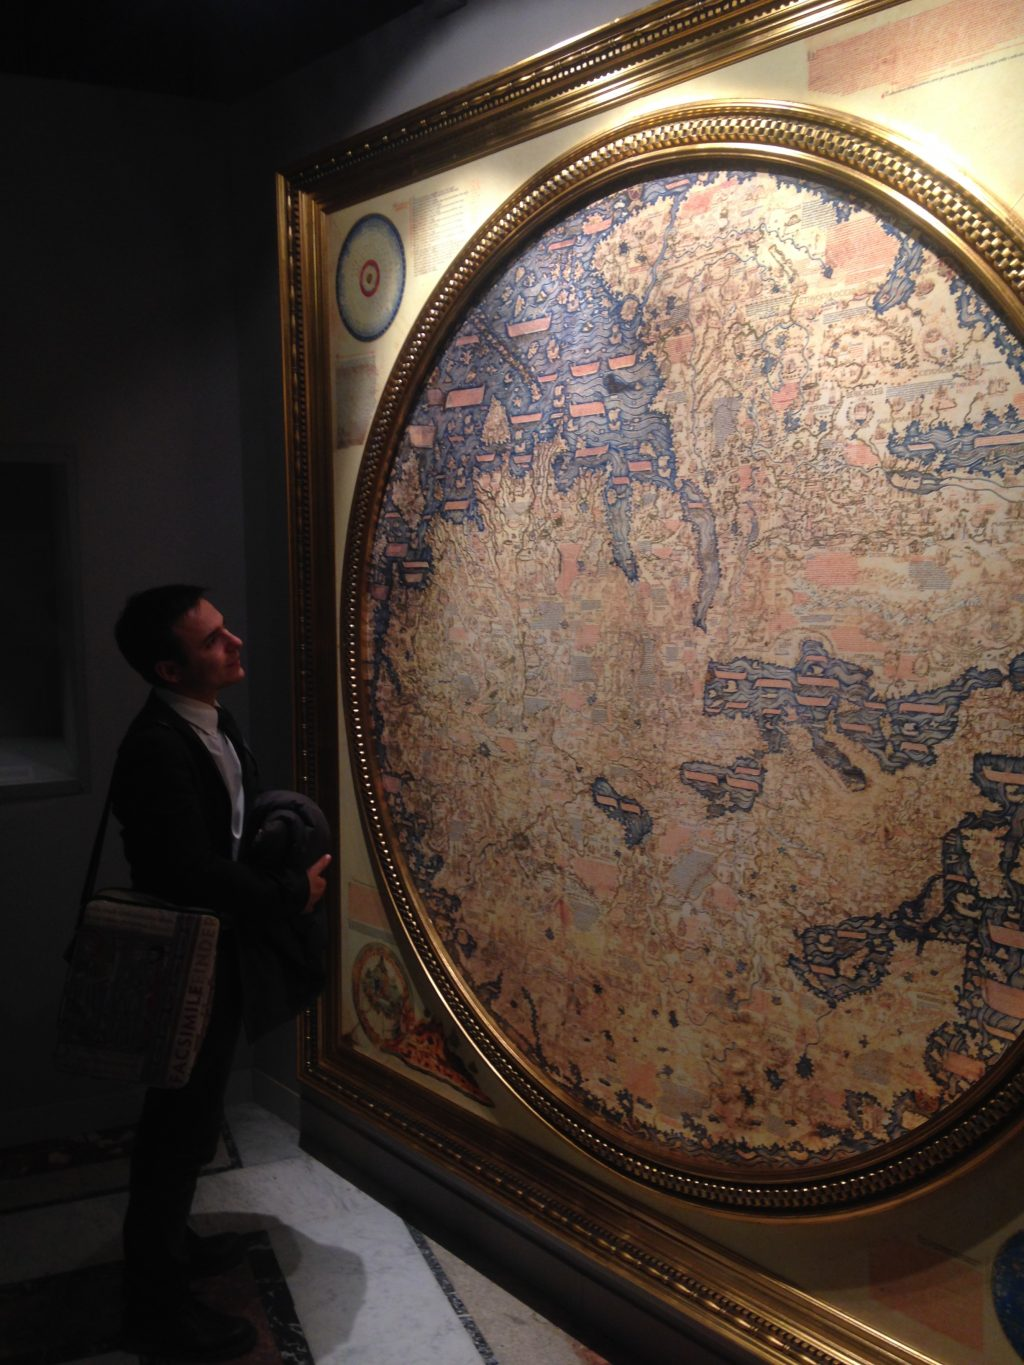 Me admiring the beautiful Fra Mauro map facsimile